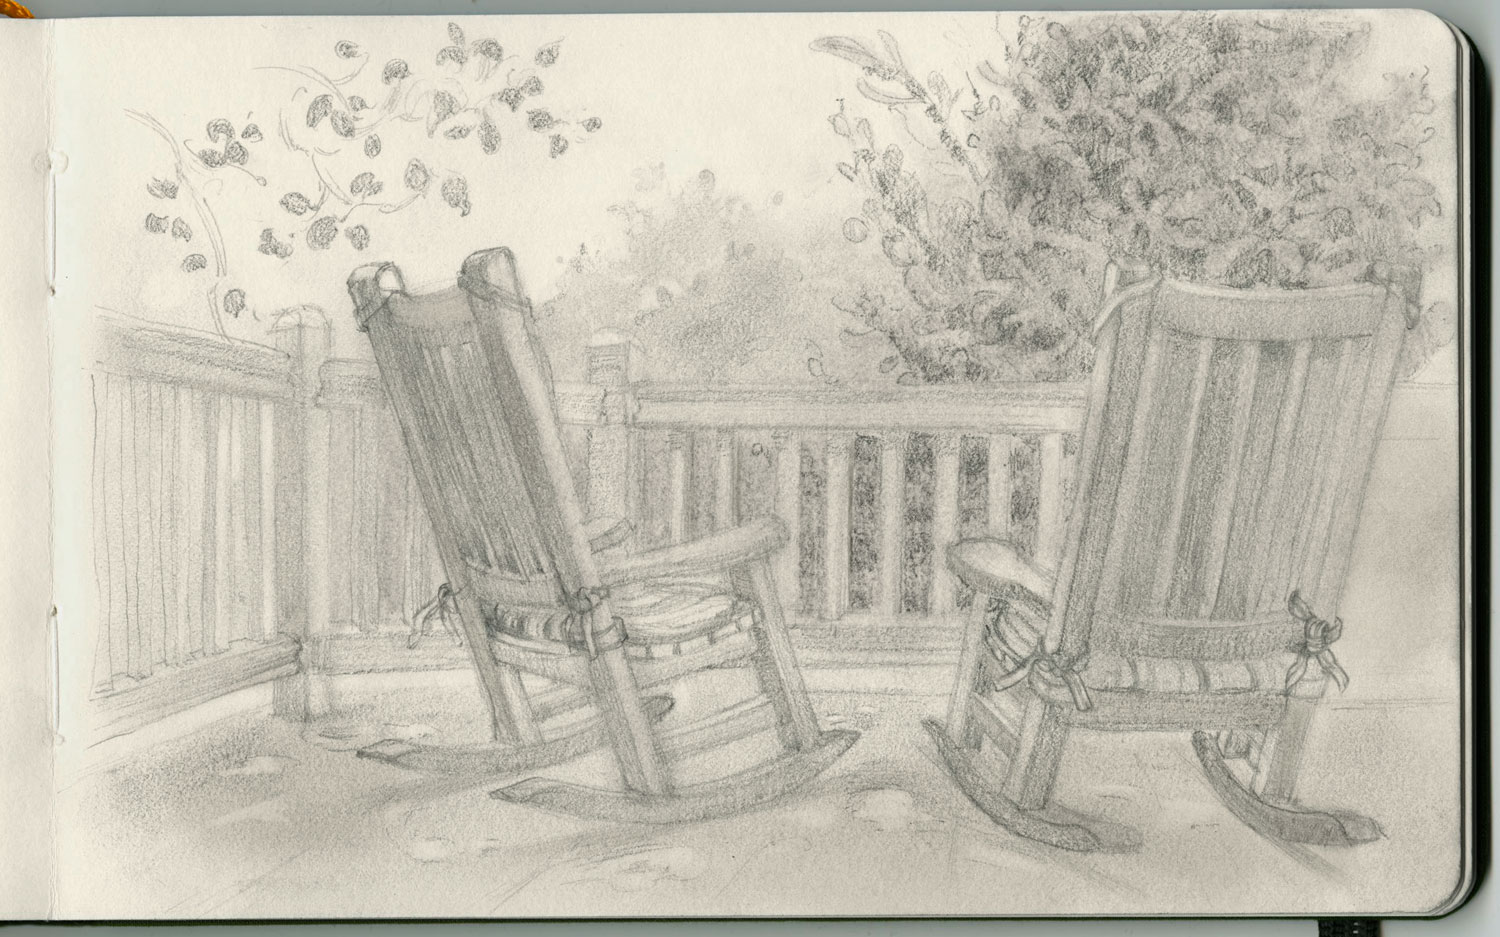 Rocking chairs in St. Helena, Napa Valley.